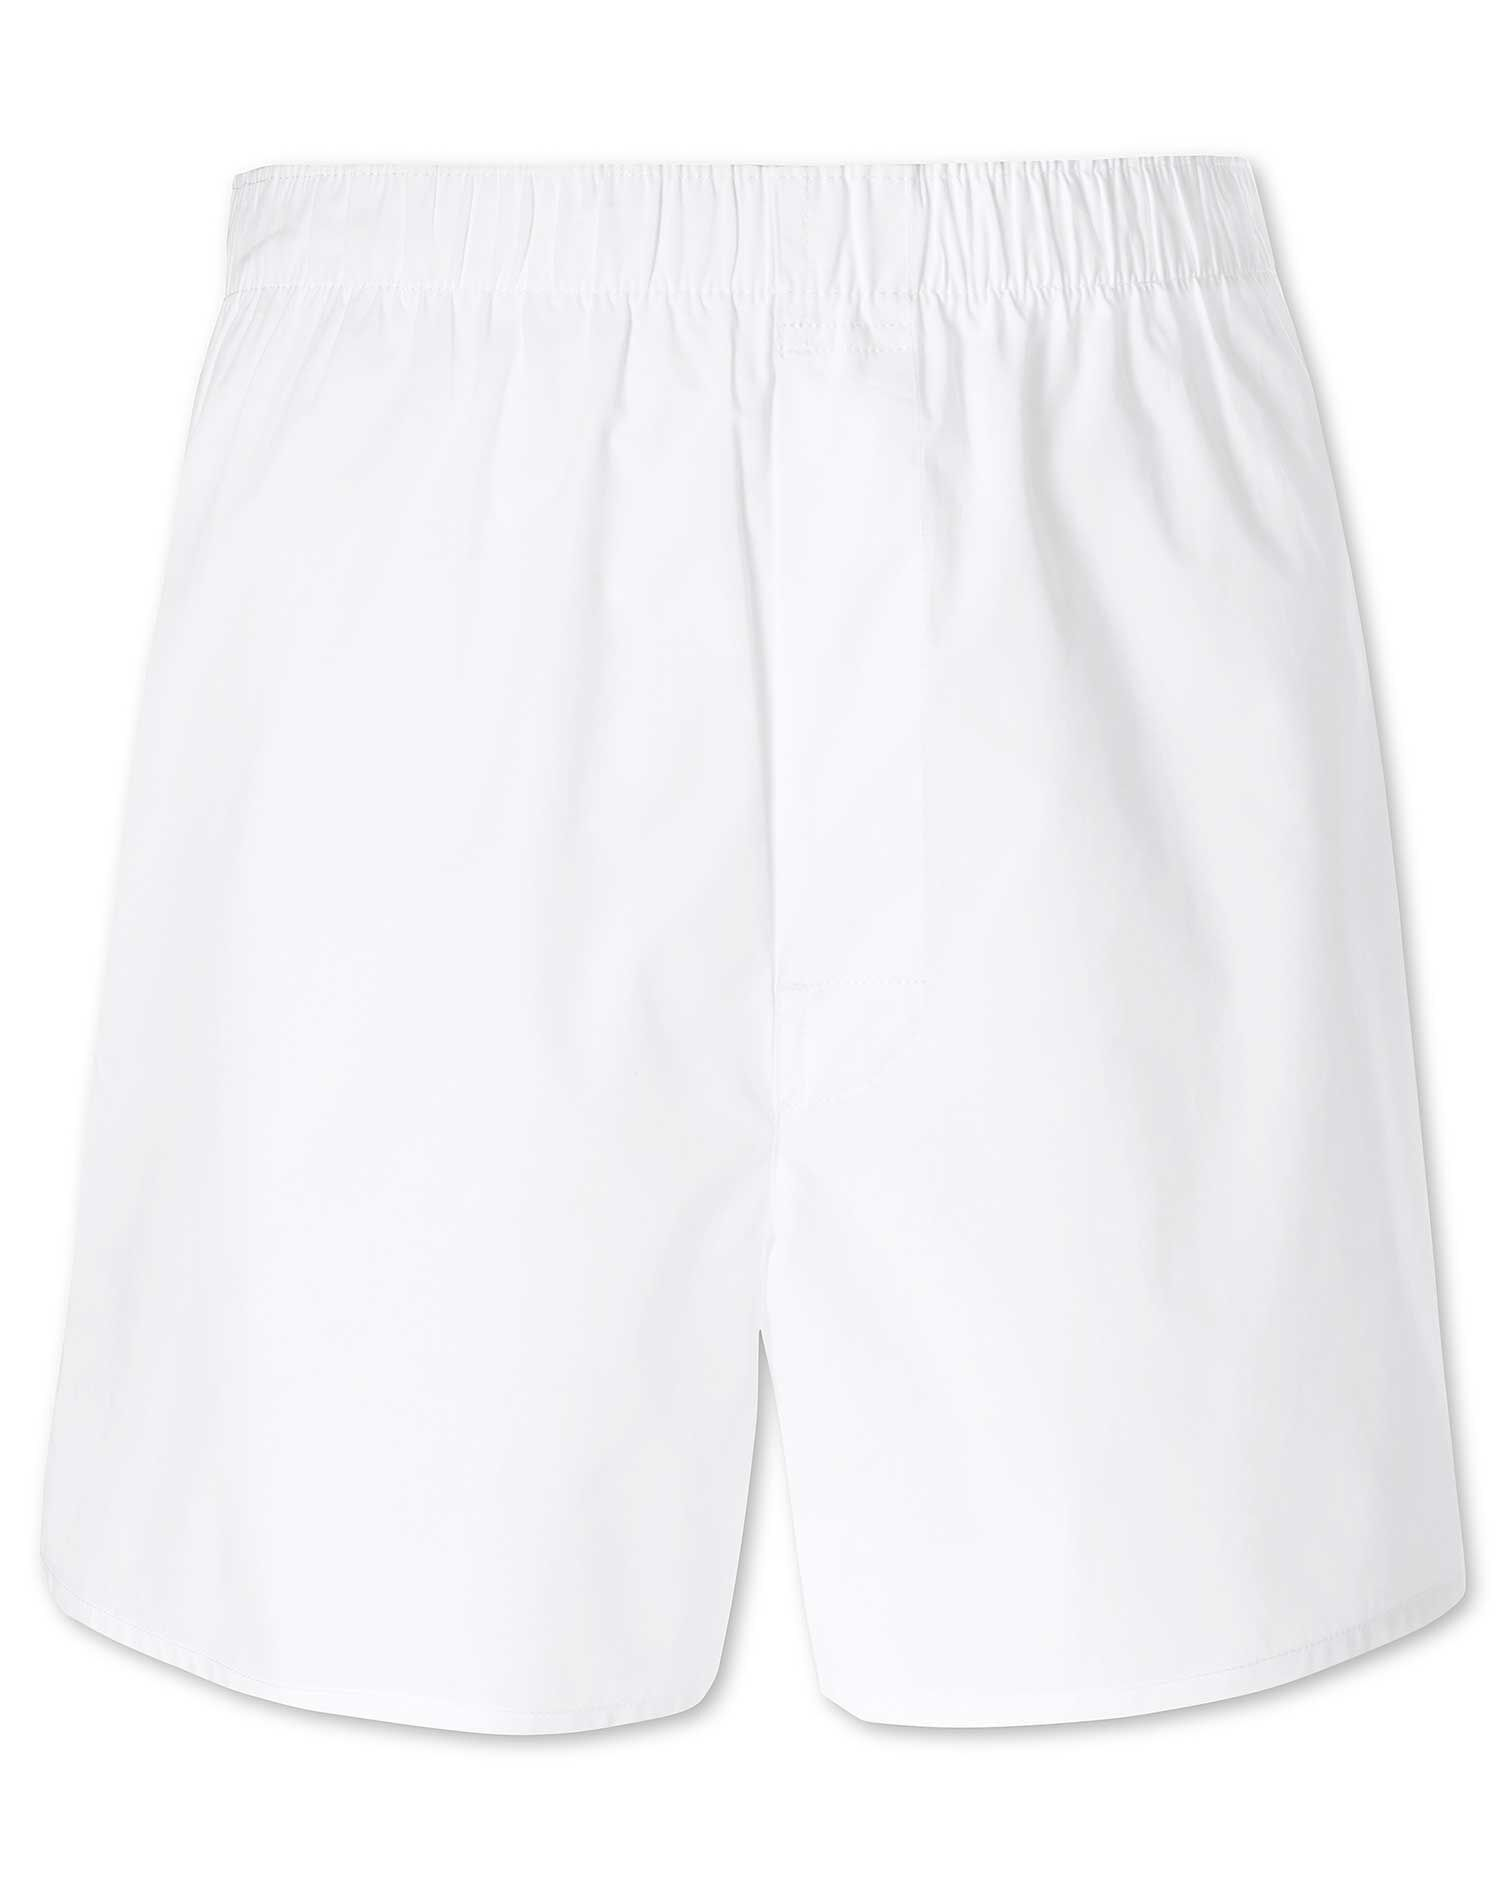 White Woven Boxers Size XL by Charles Tyrwhitt